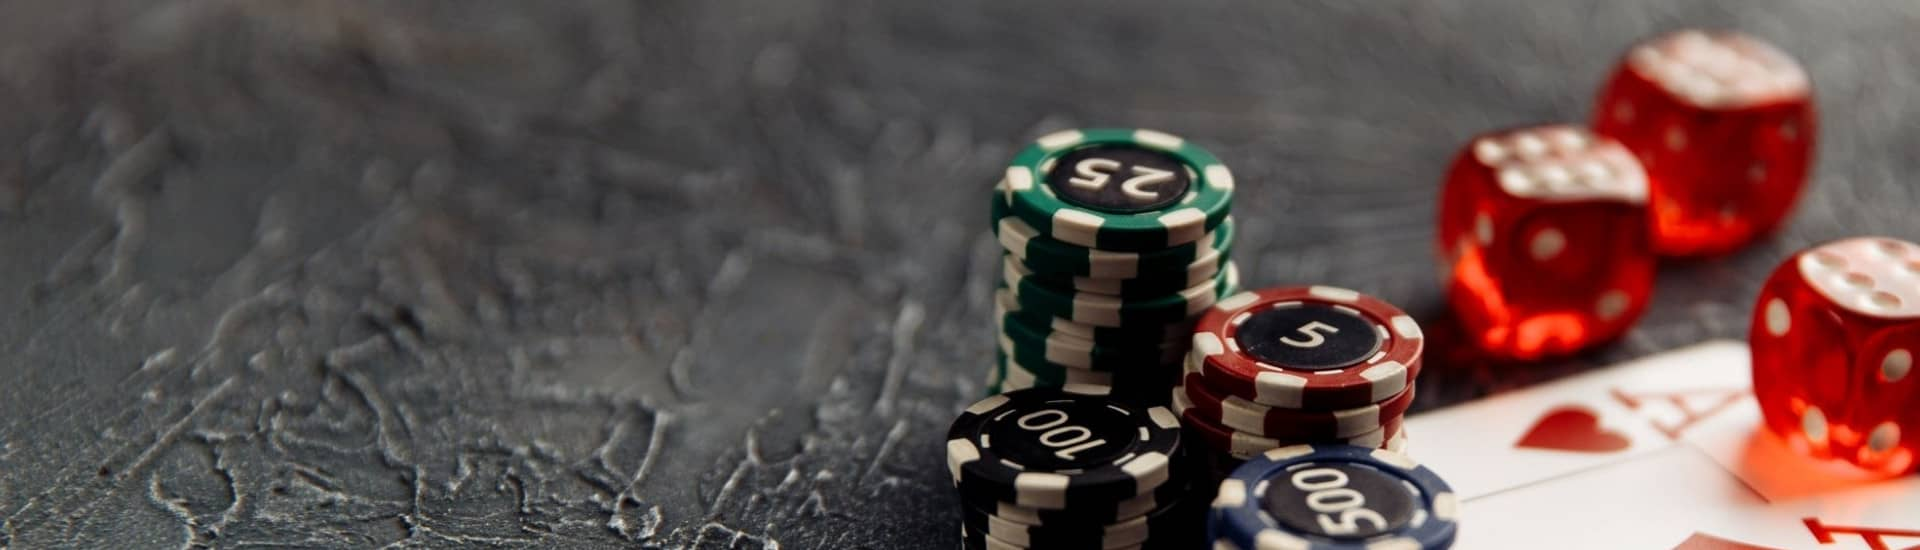 Online gambling solutions